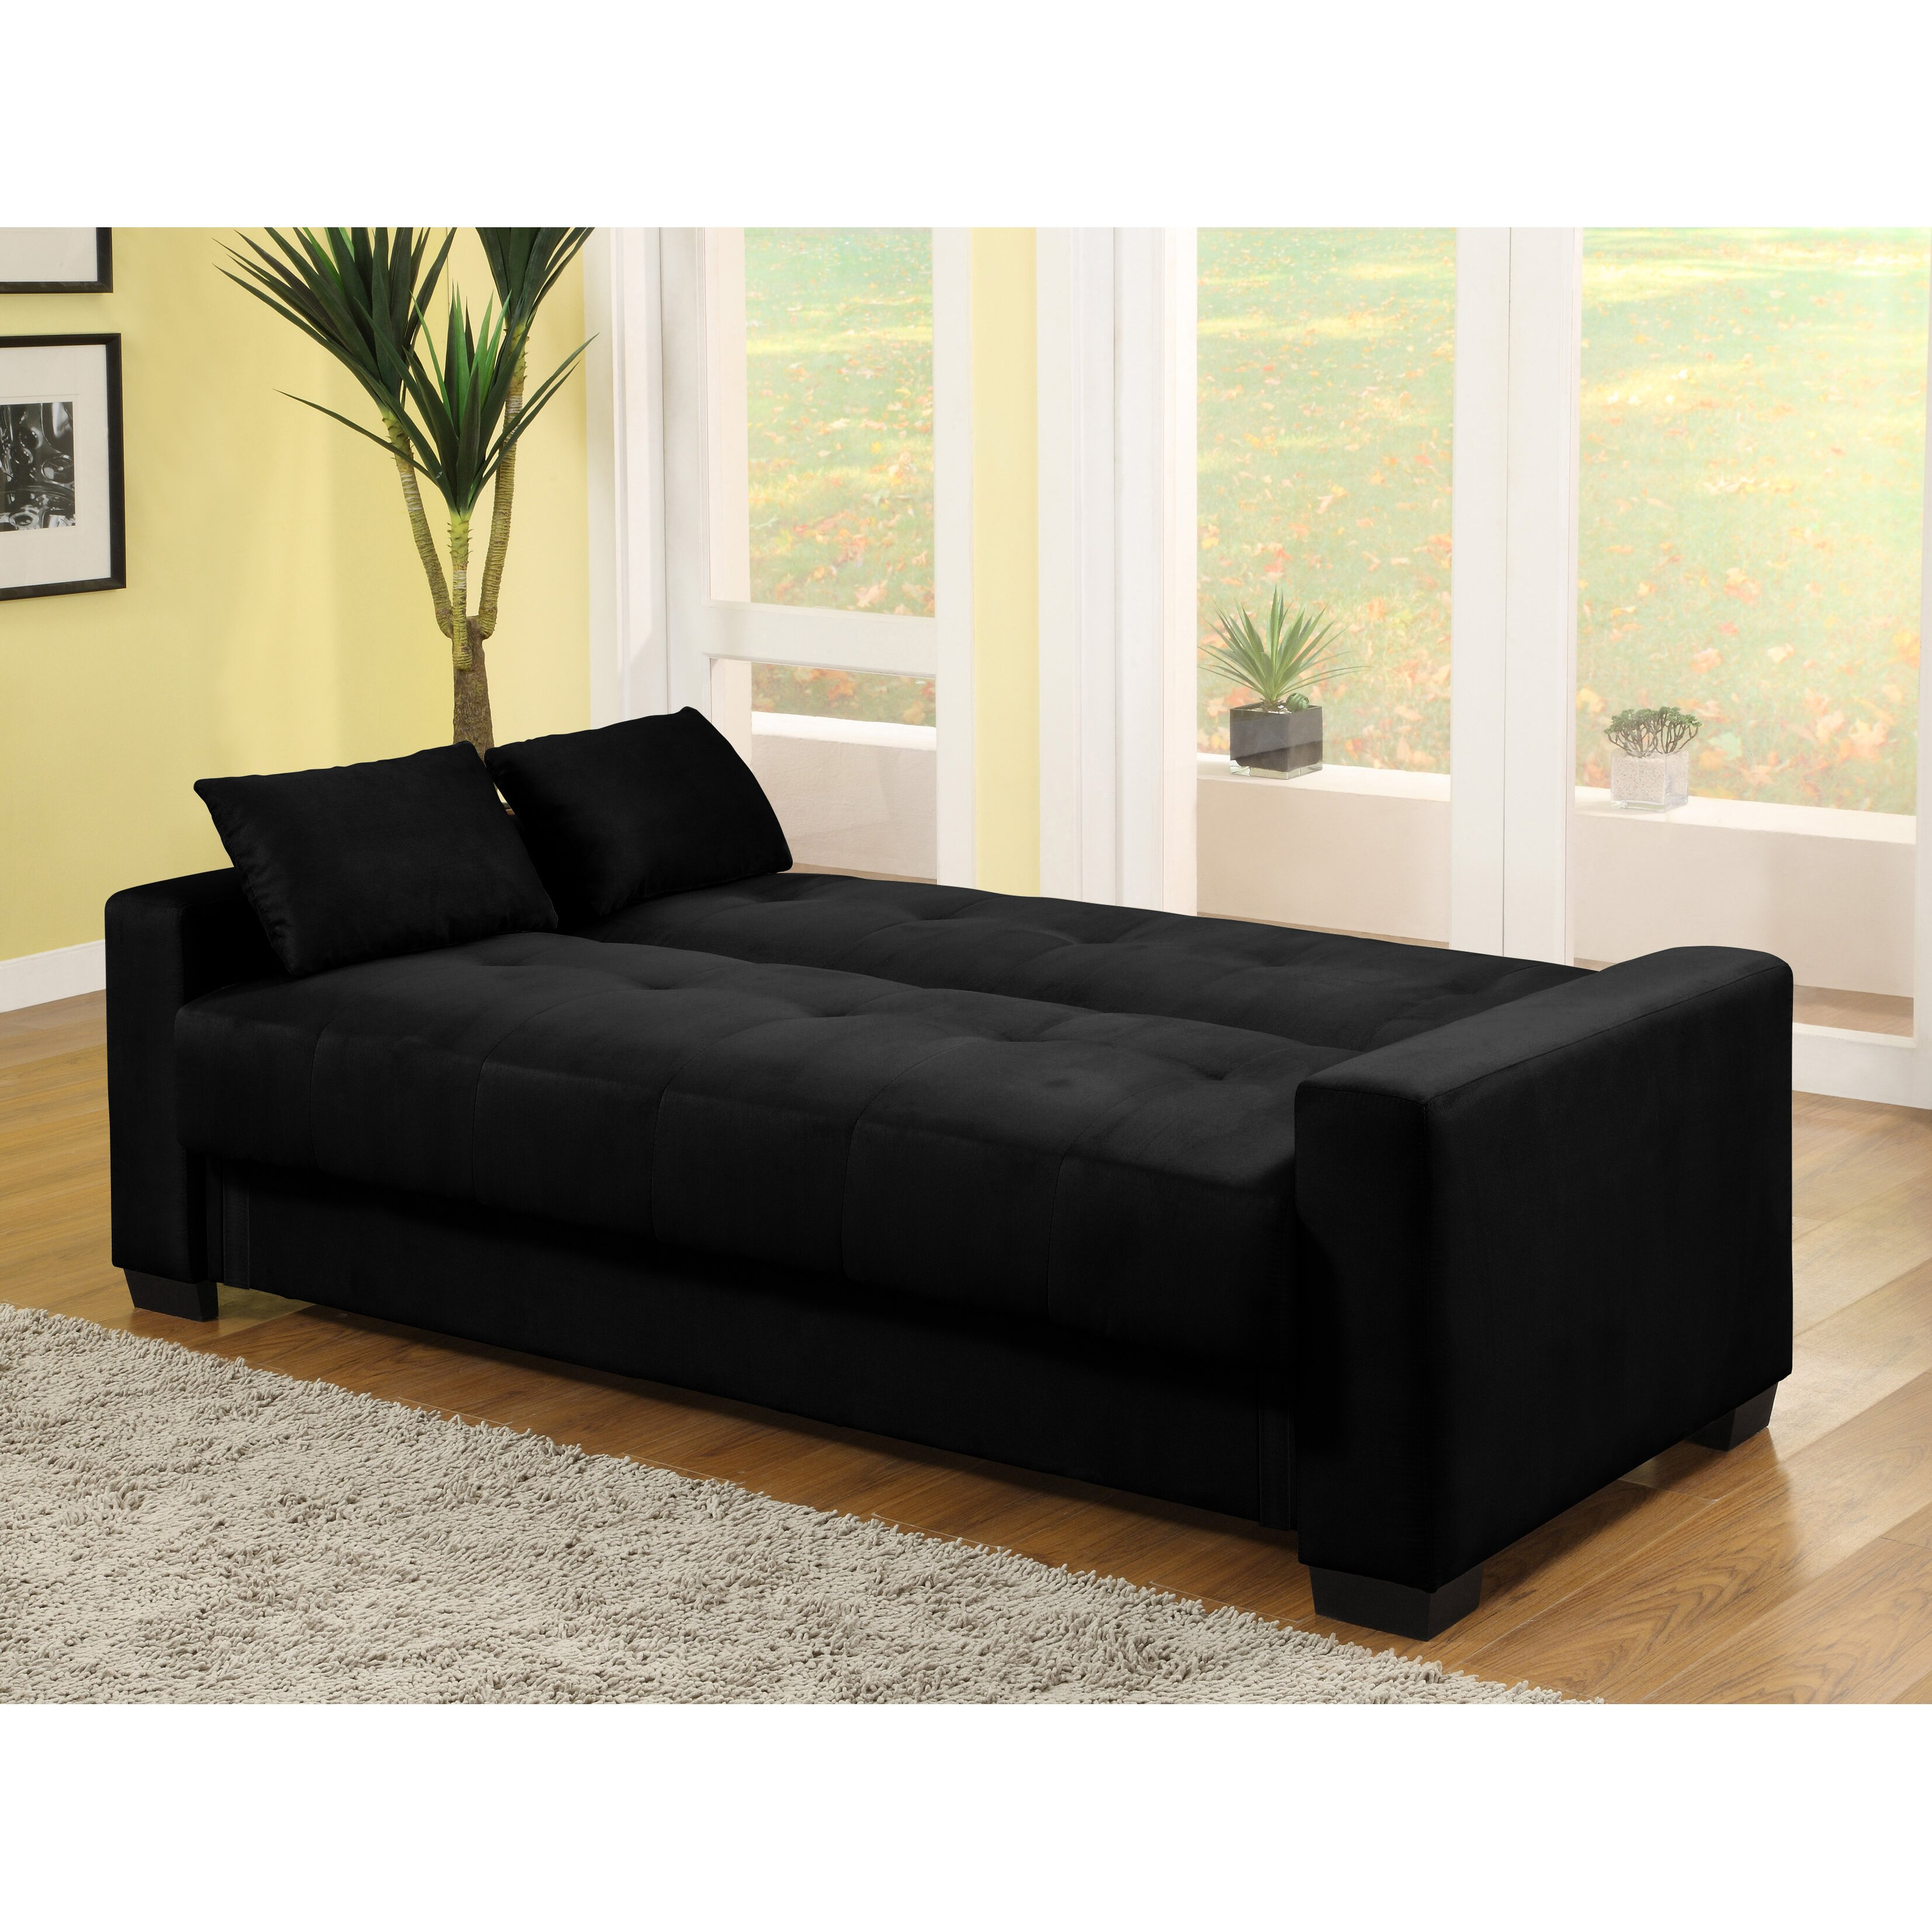 futon boston  roselawnlutheran - serta futons boston convertible sofa